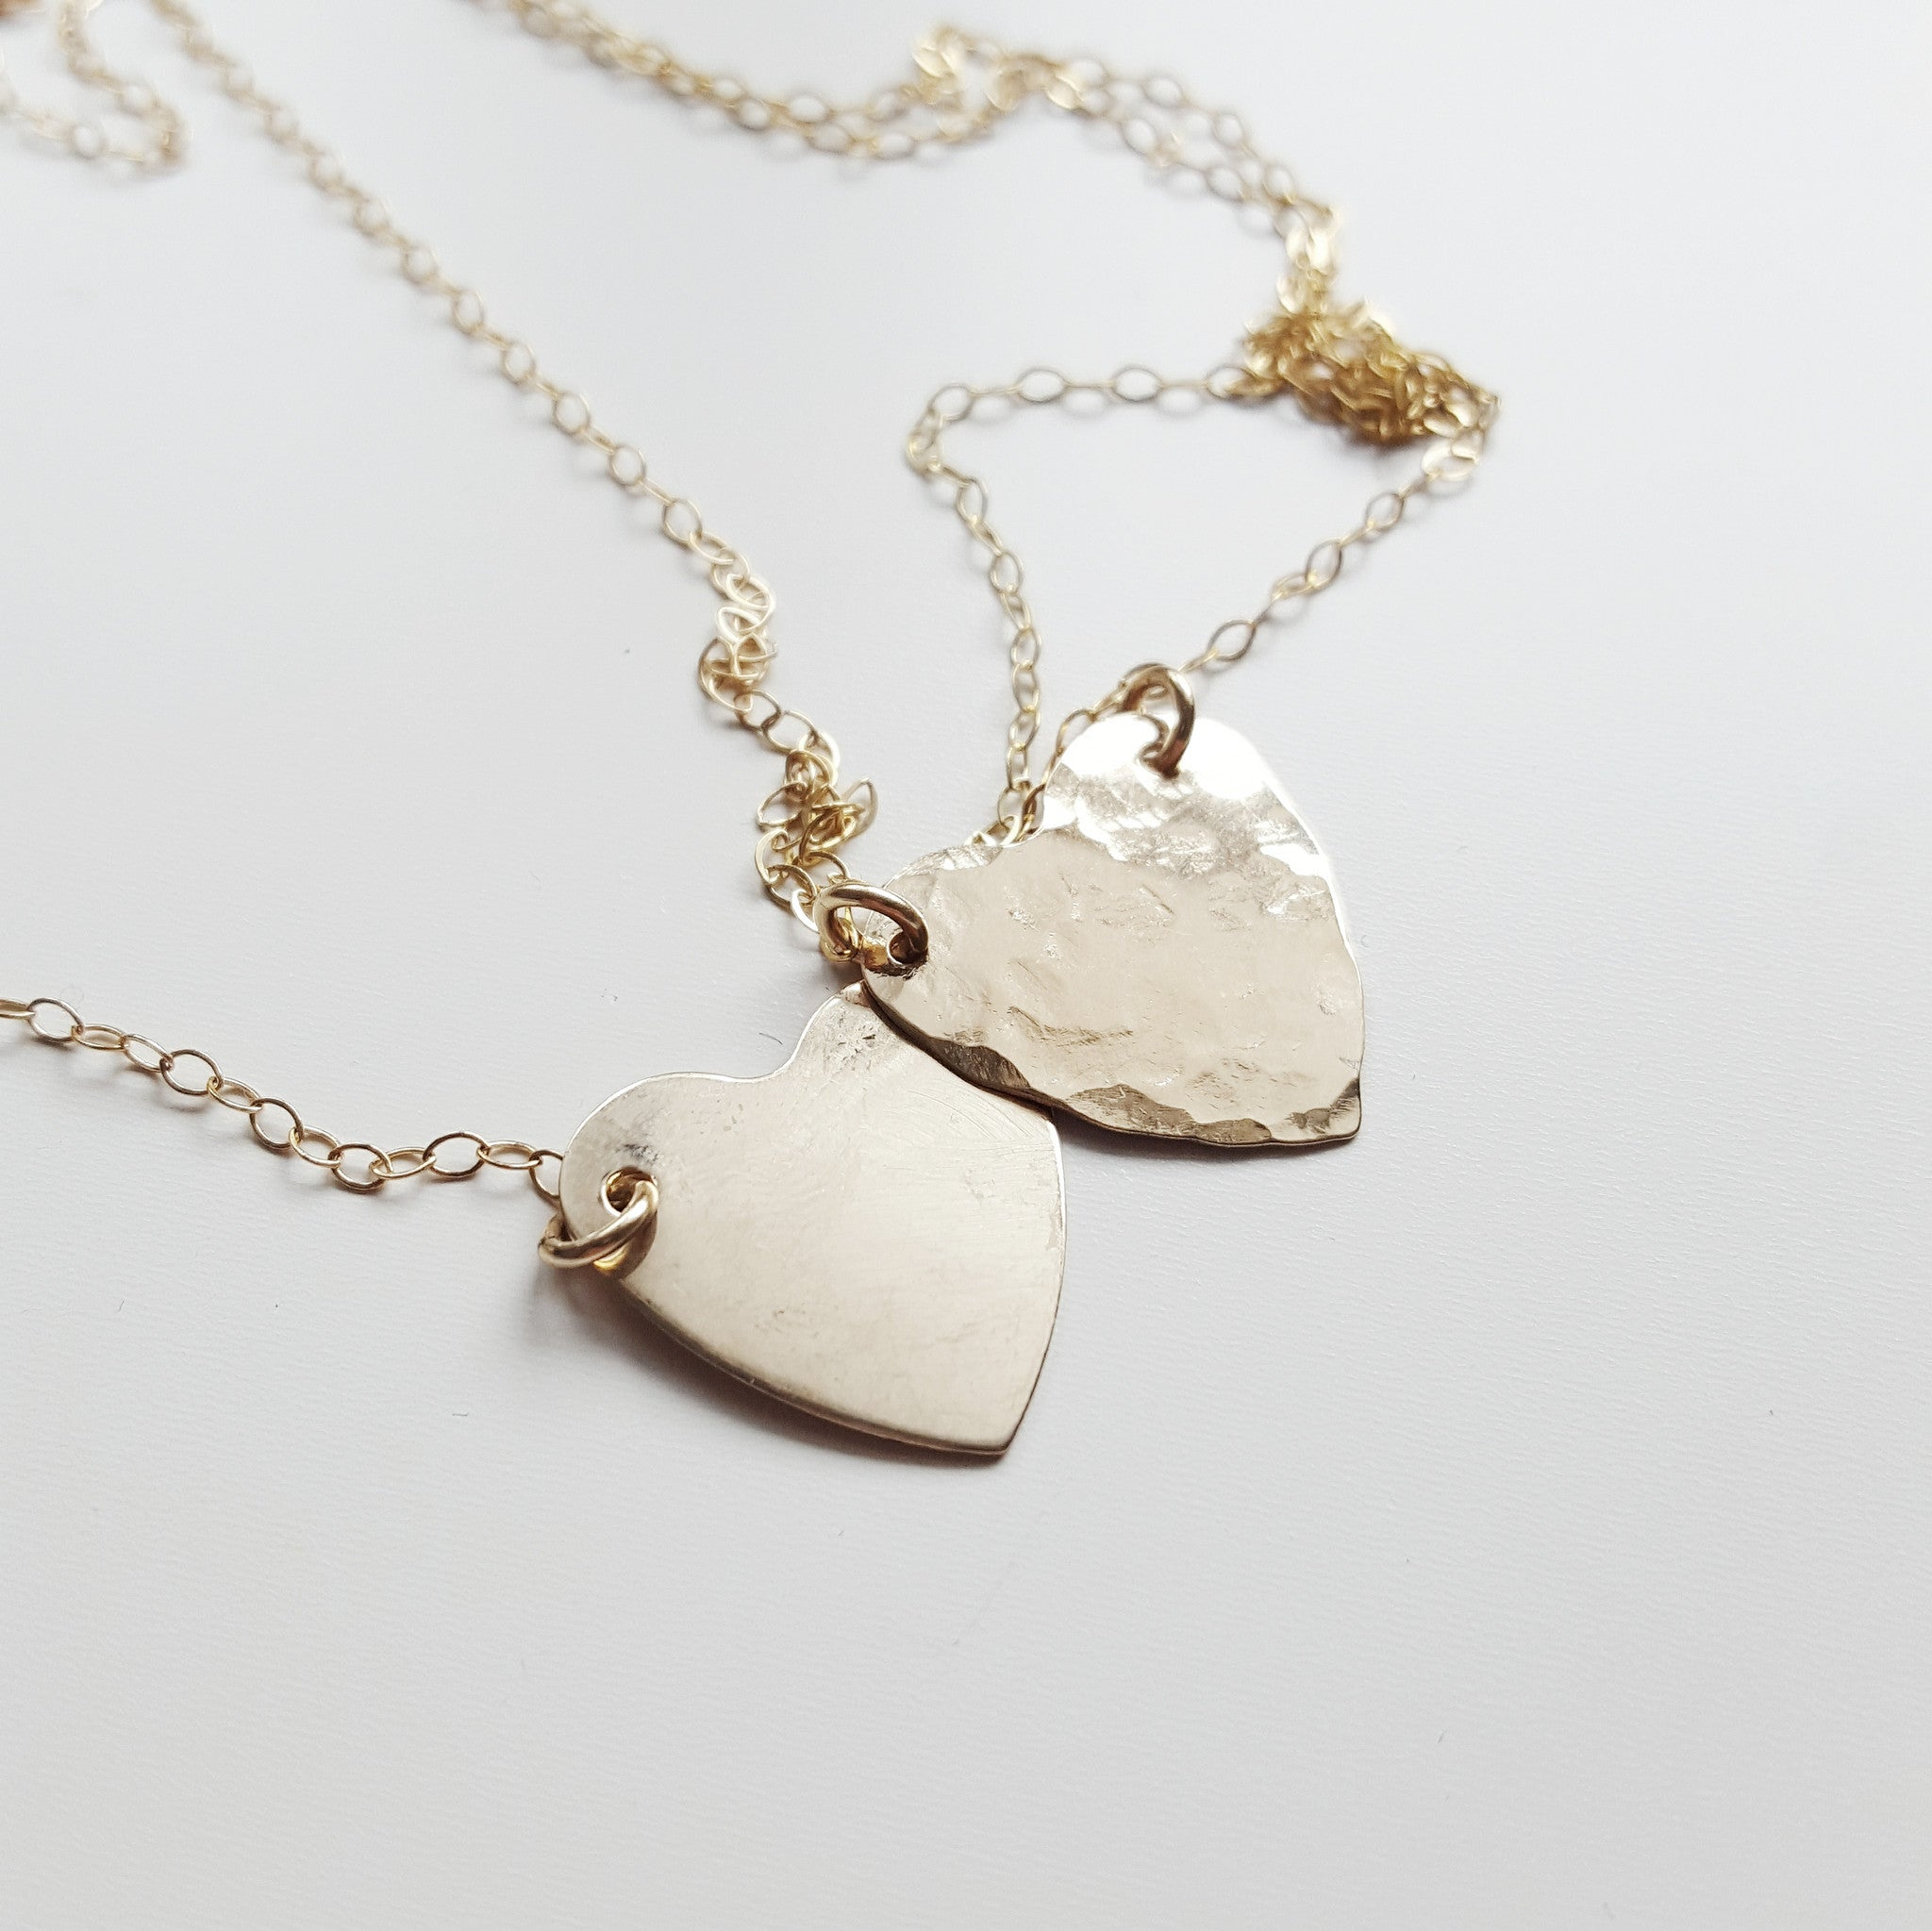 two hammered heart necklaces with chains